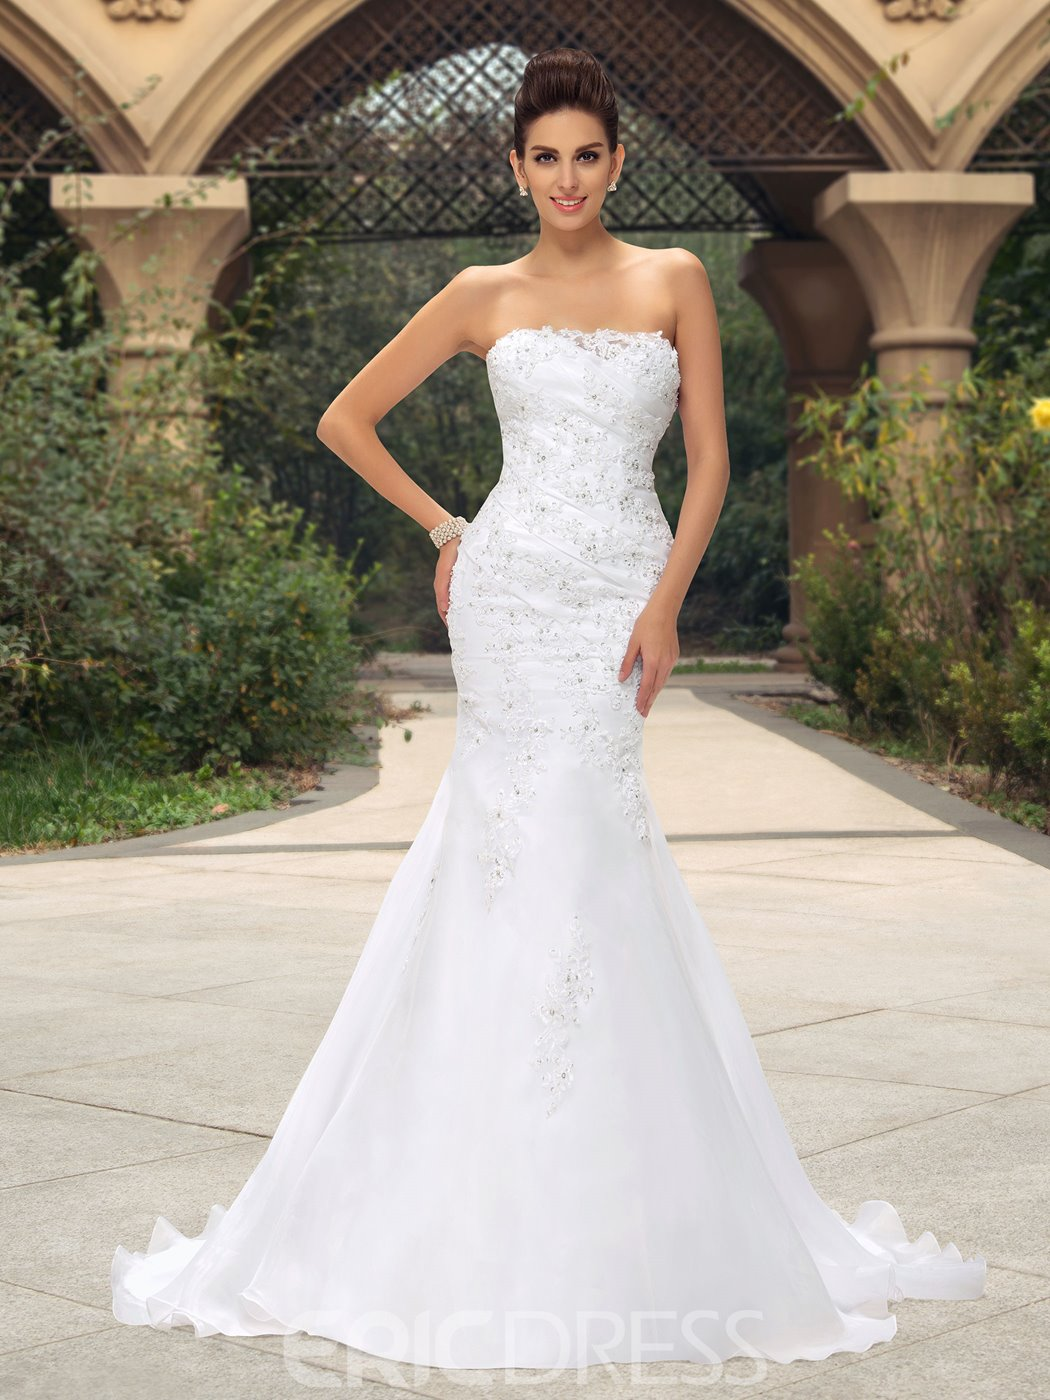 Glamorous Strapless Appliques Sequins Mermaid Wedding Dress 11129096 ...